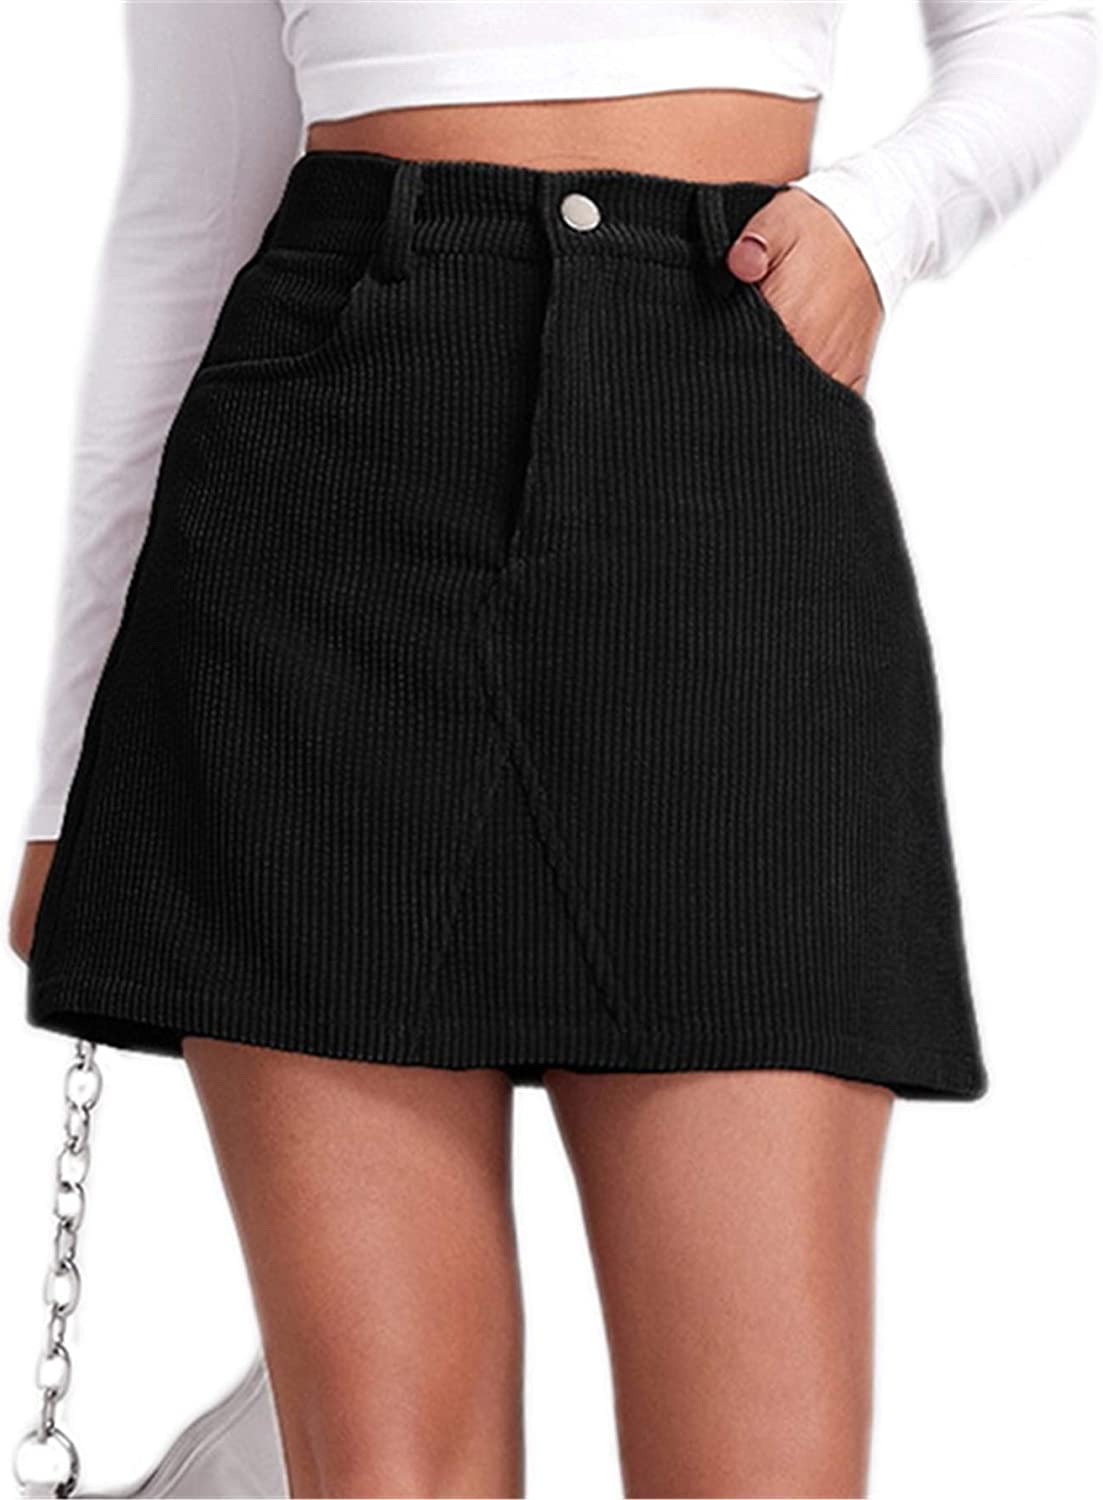 SOLY HUX Women's Casual High Waist A Line Corduroy Mini Skirt with Pocket